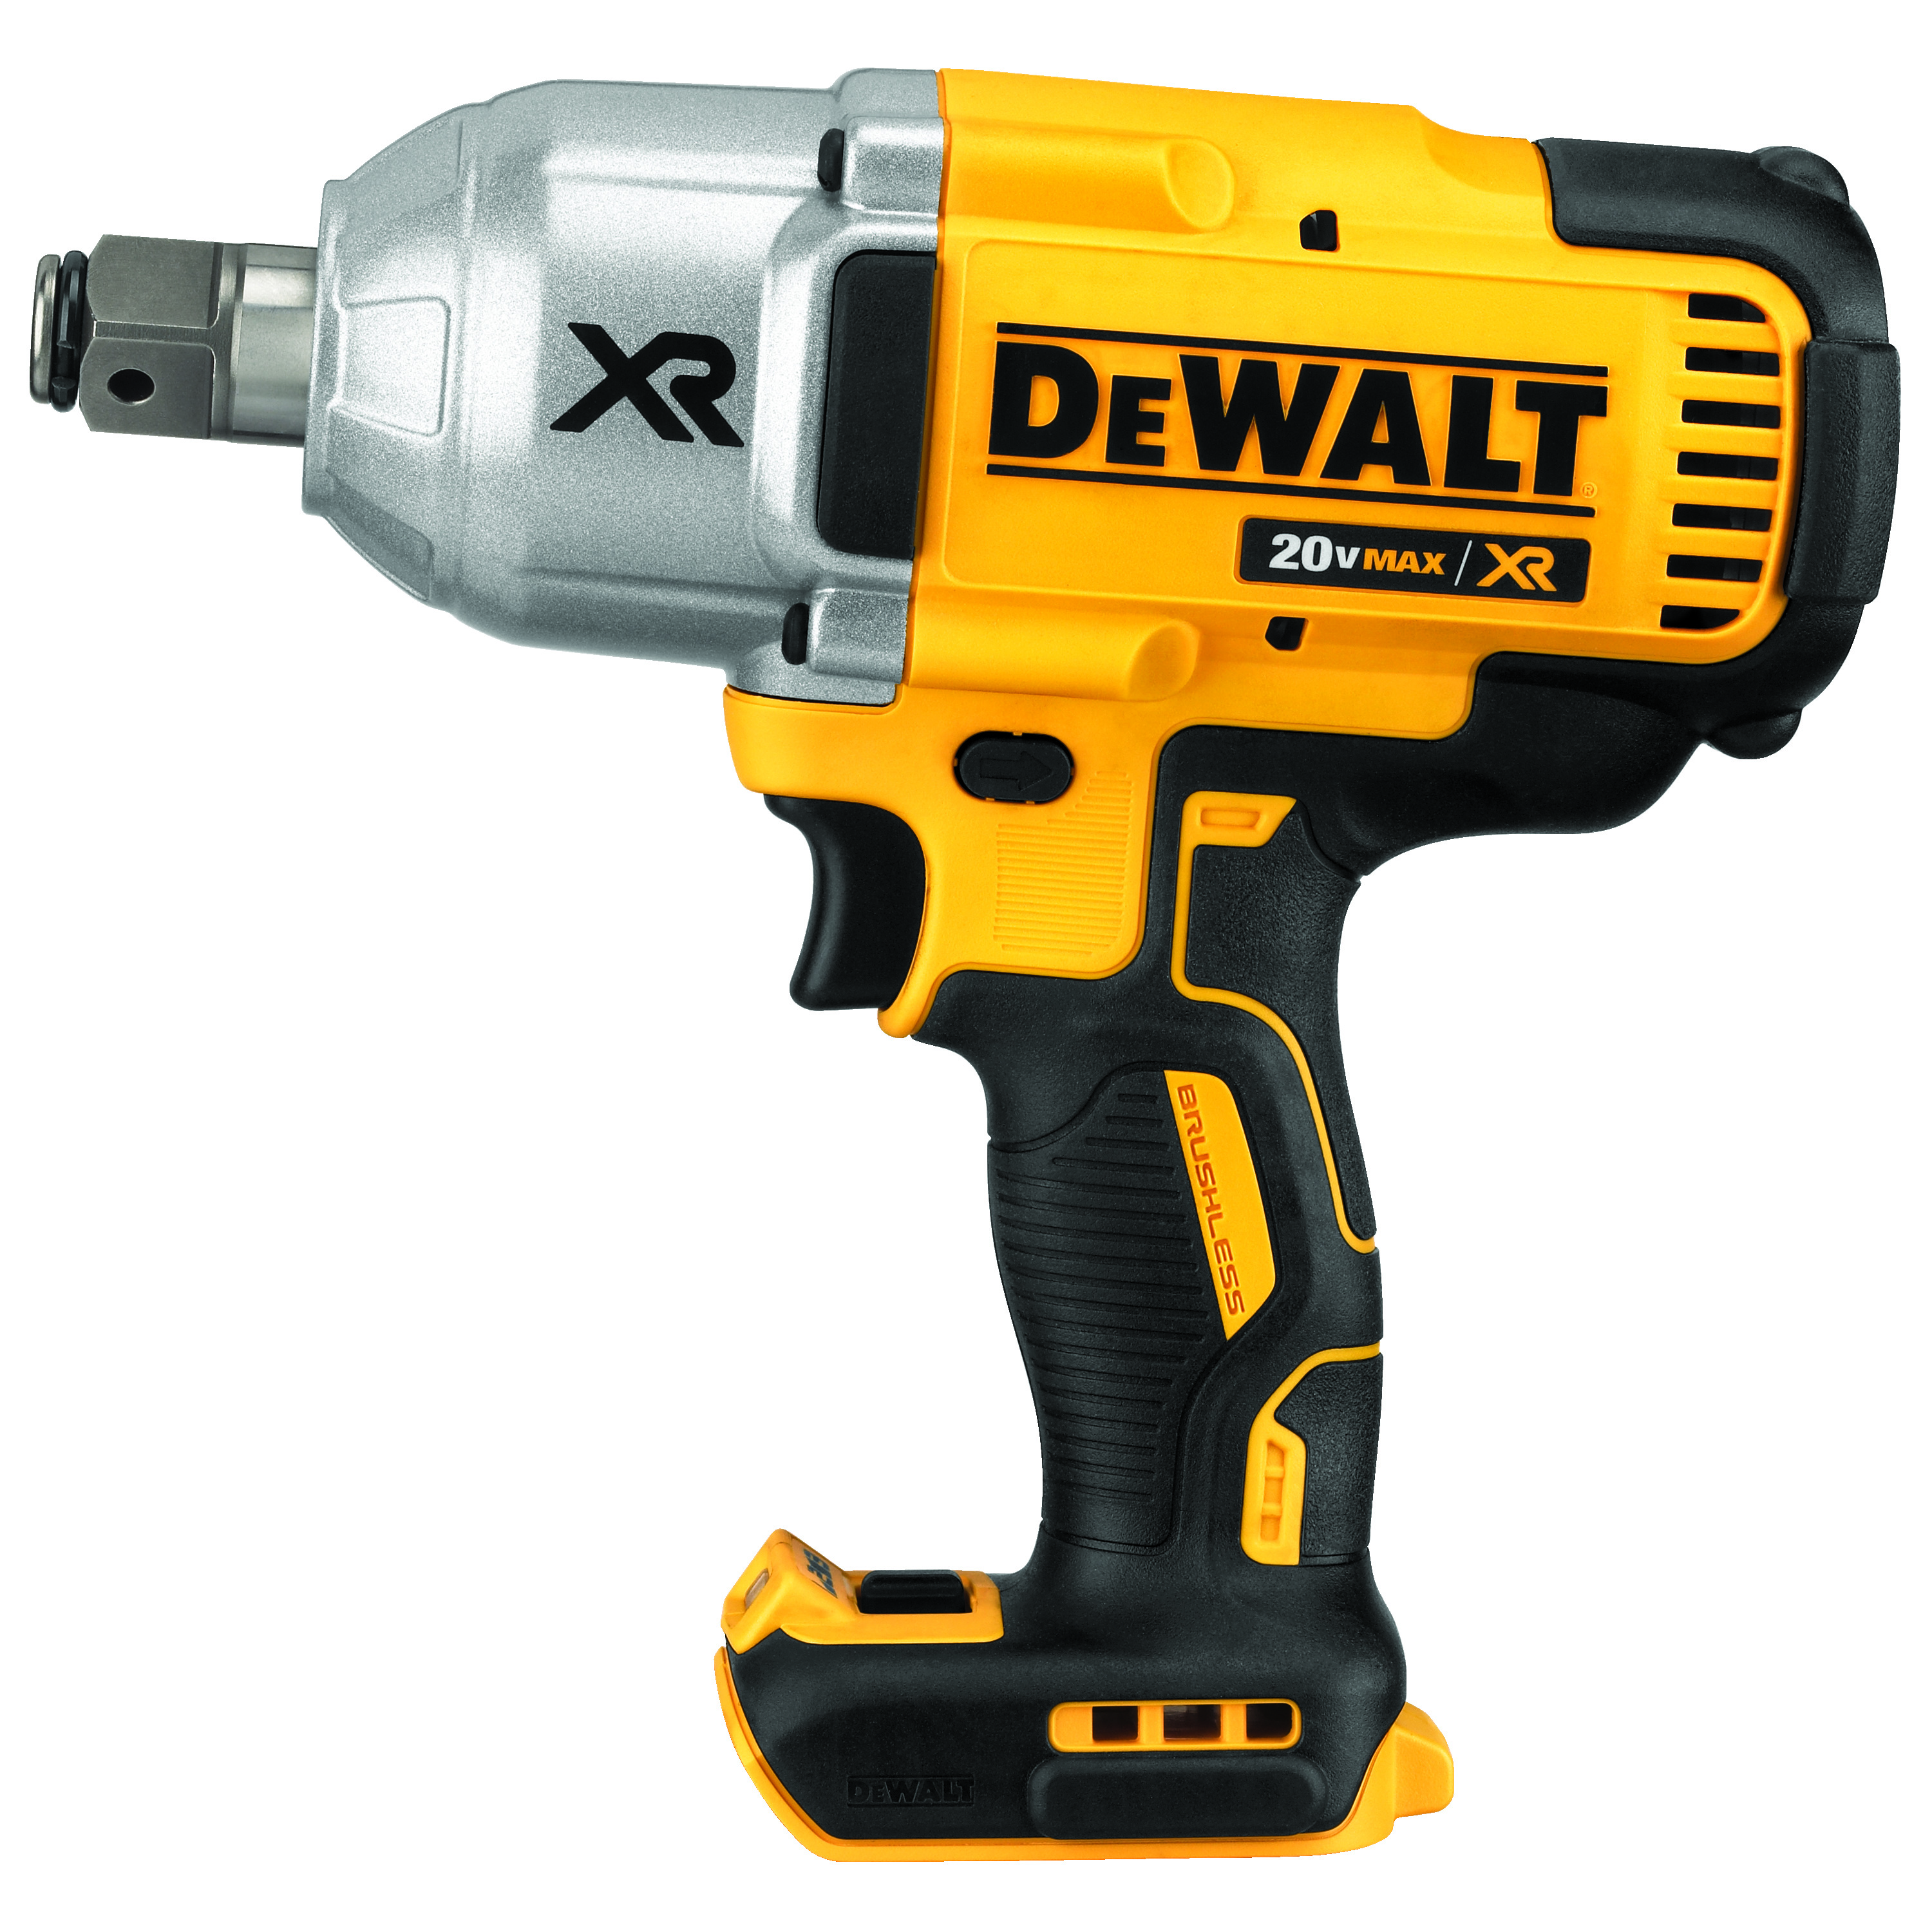 DeWALT® 20V MAX* MATRIX™ DCF897B Compact Cordless Impact Wrench Kit, 3/4 in Straight Drive, 700 ft-lb Torque, 20 VDC, 8-3/16 in OAL